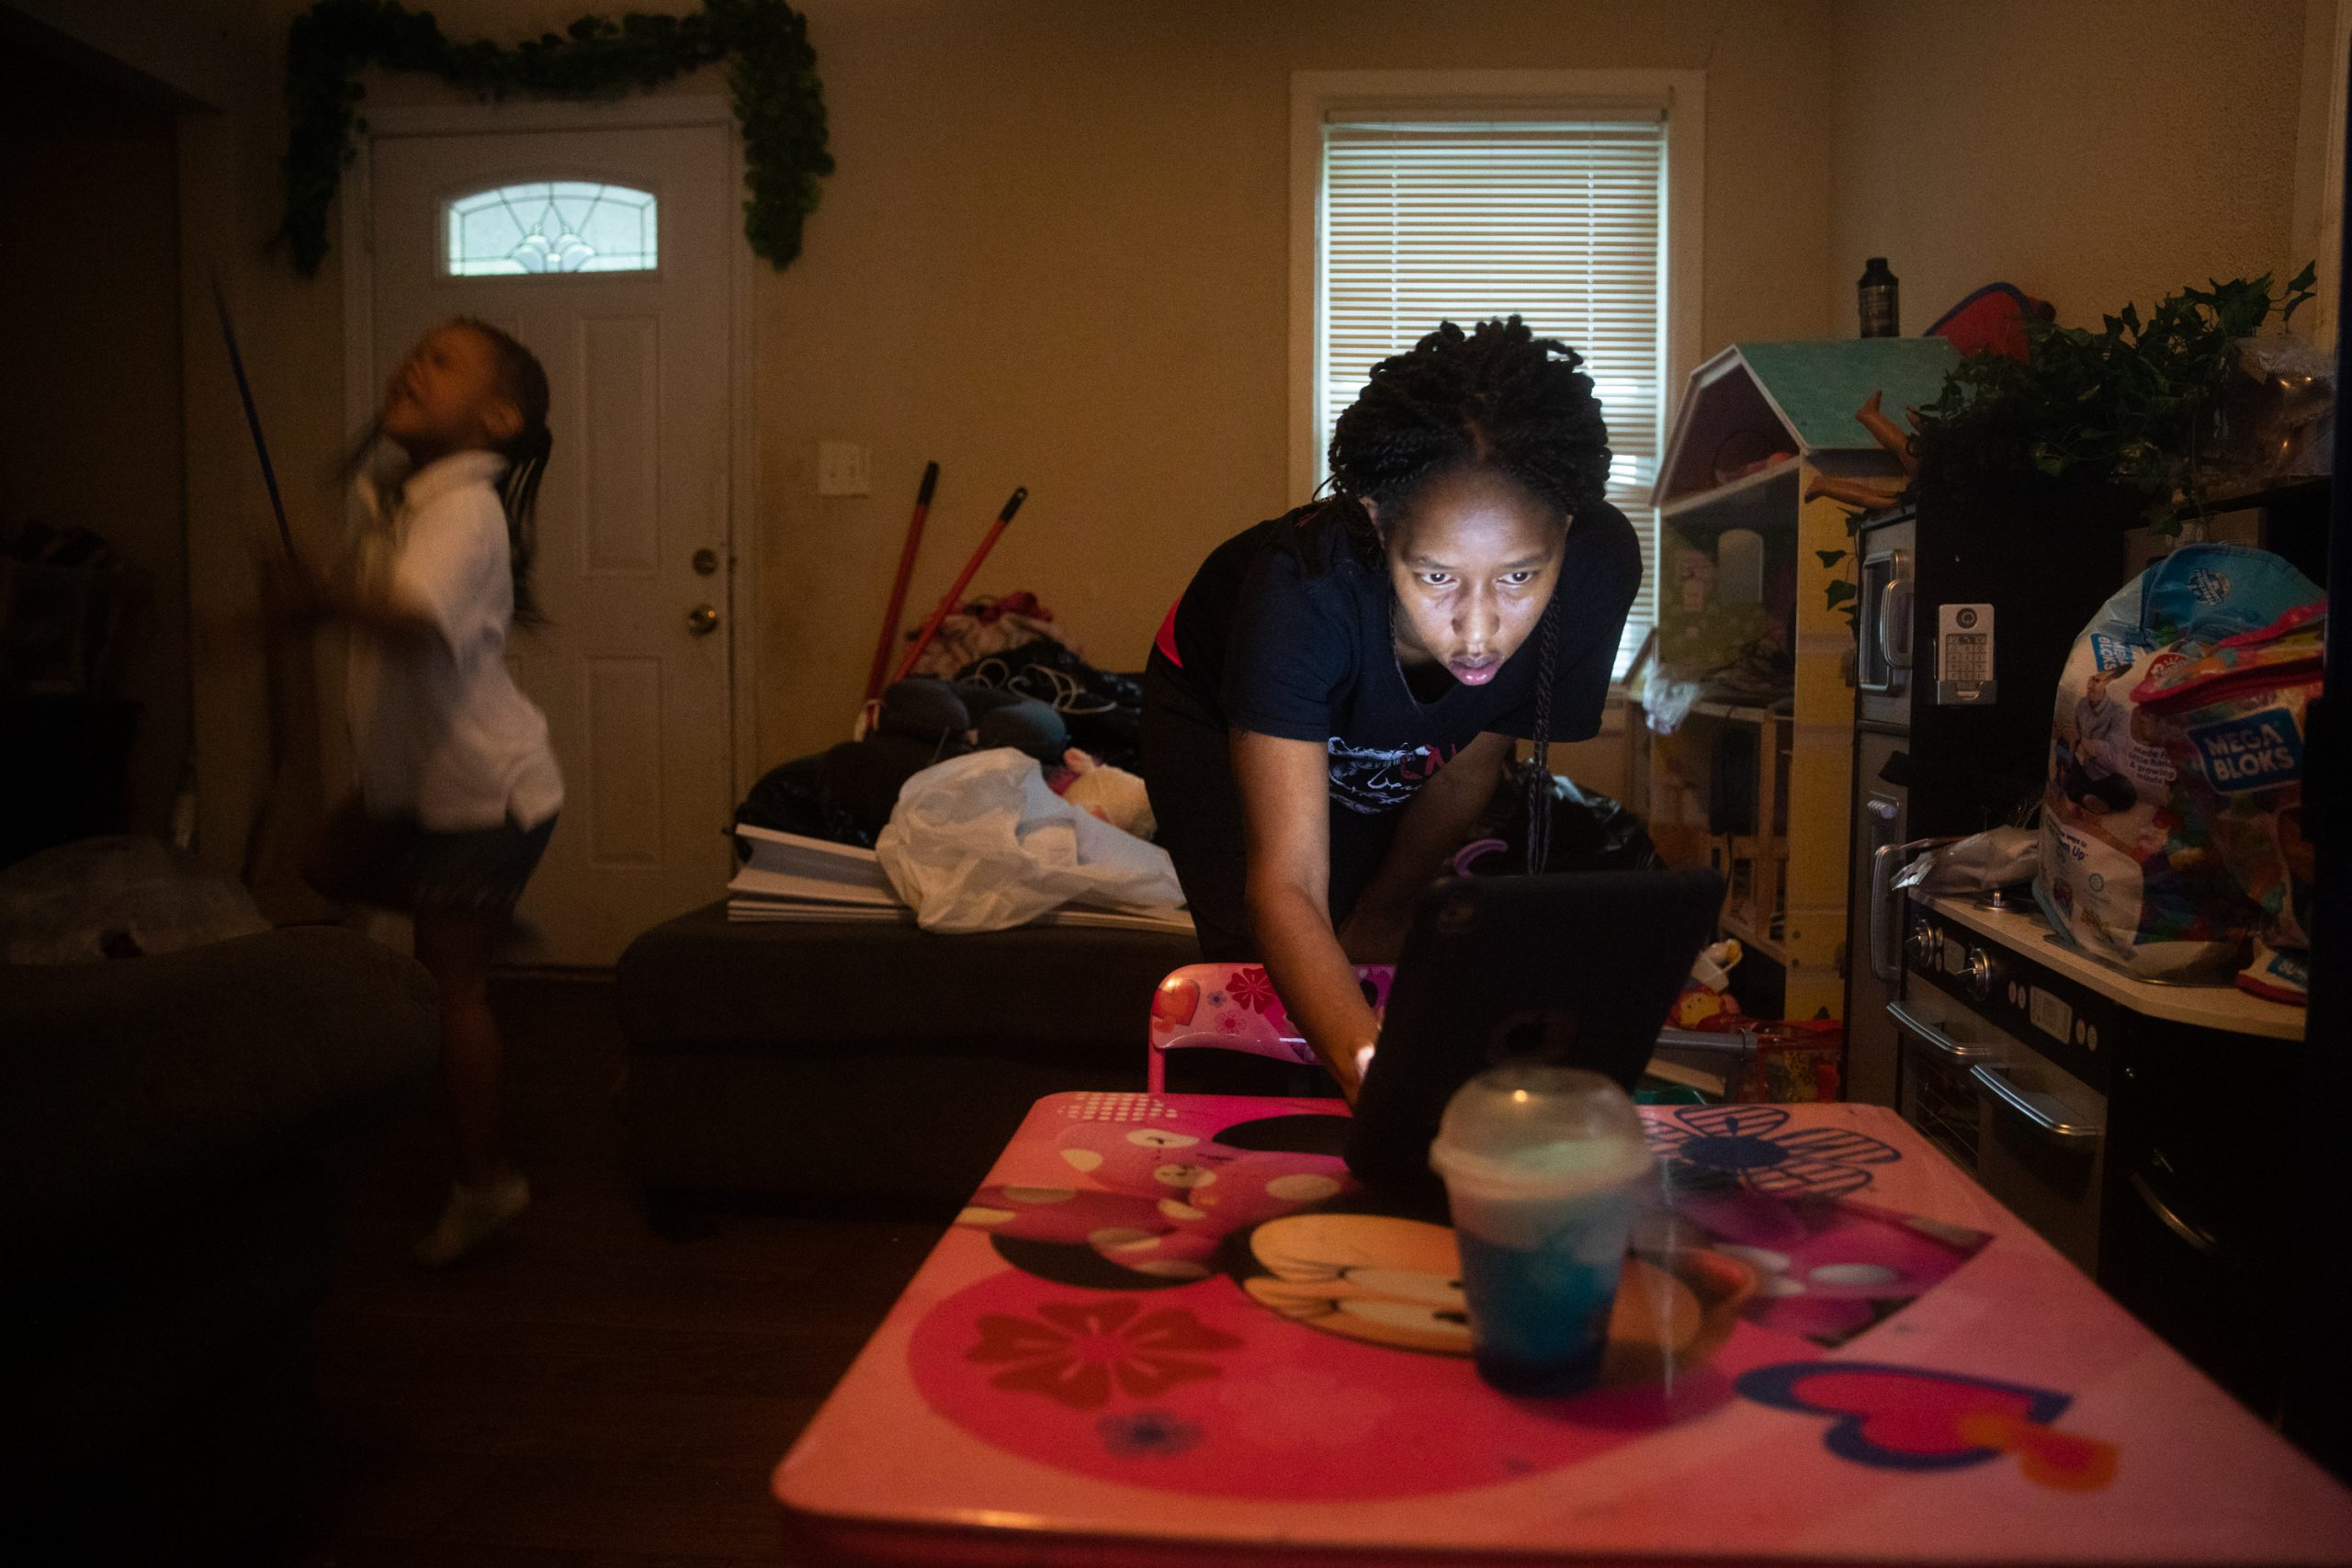 Mom setups up laptop on child's Minnie Mouse desk